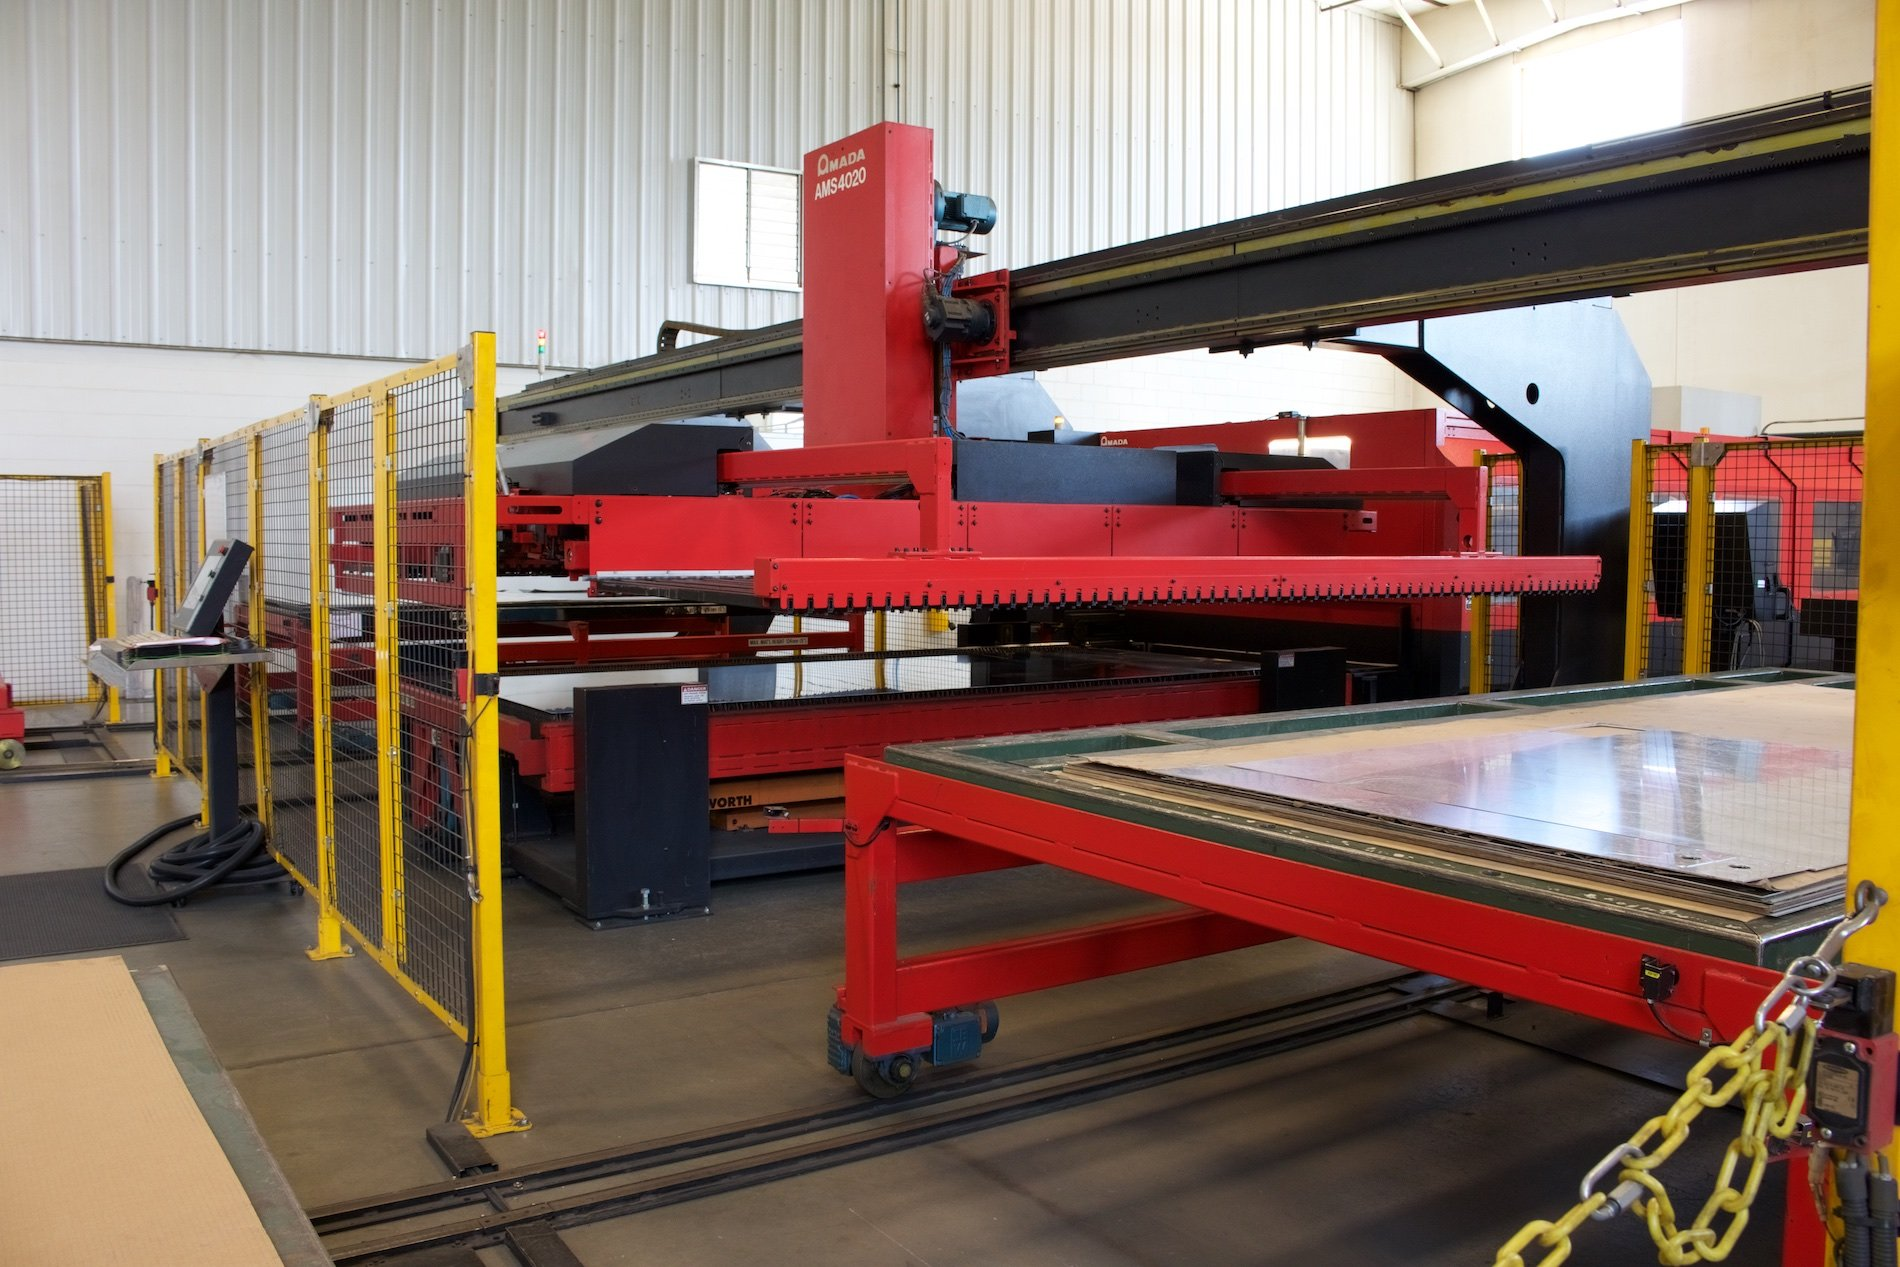 Badger Sheet Metal Works Specializes in Aluminum Sheet Metal Fabrication